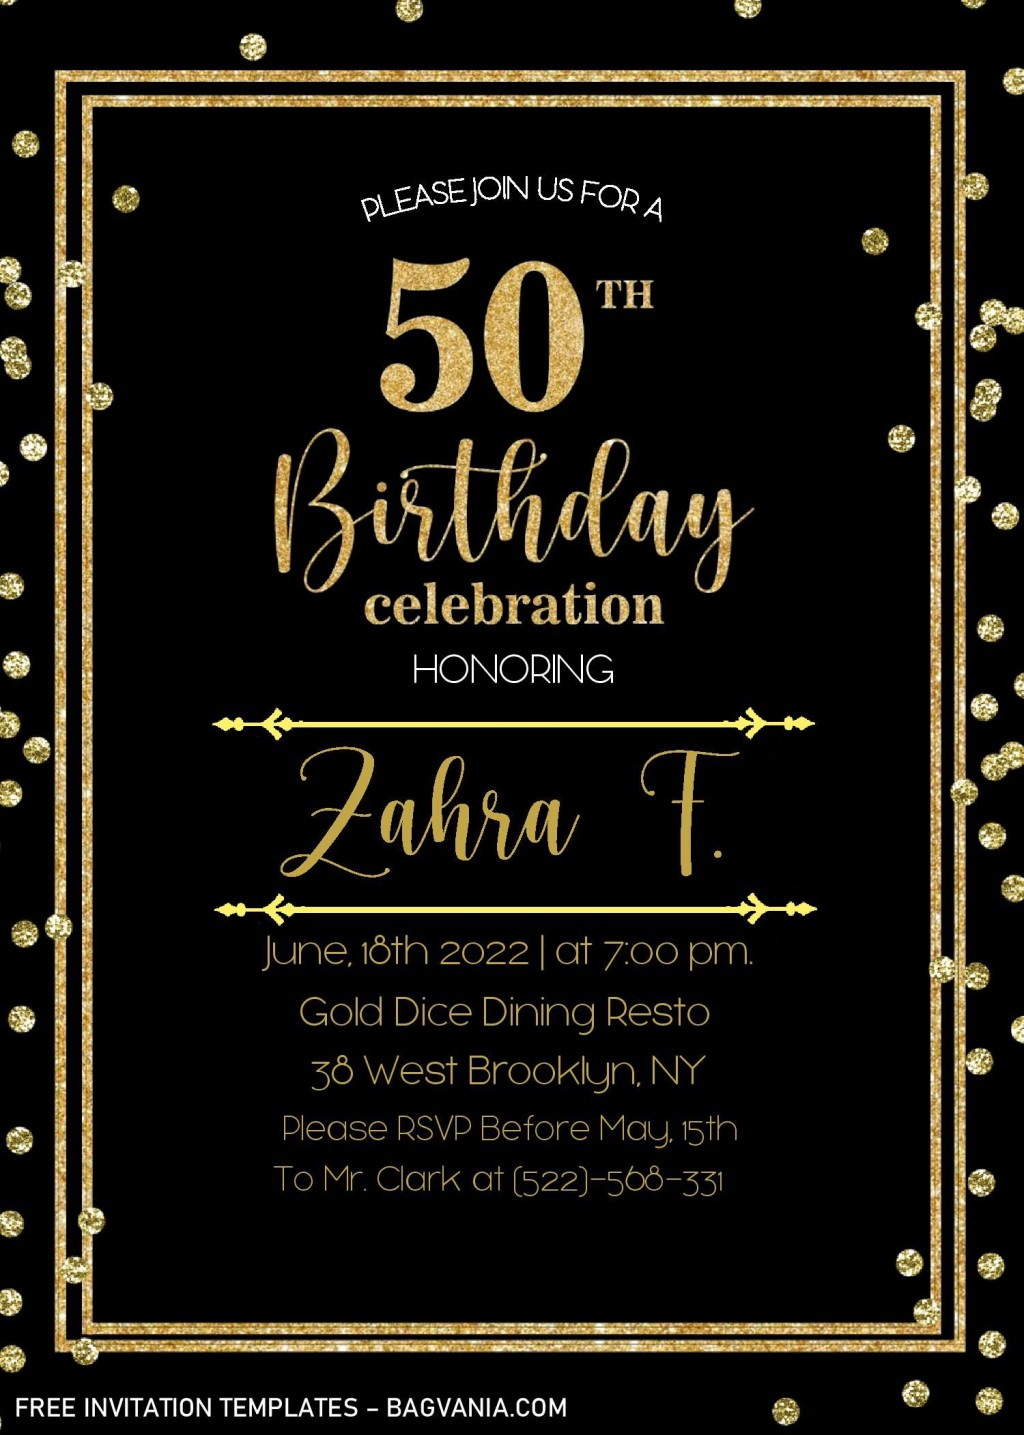 002 Striking Microsoft Word 50th Birthday Invitation Template Image  Editable Wedding AnniversaryLarge